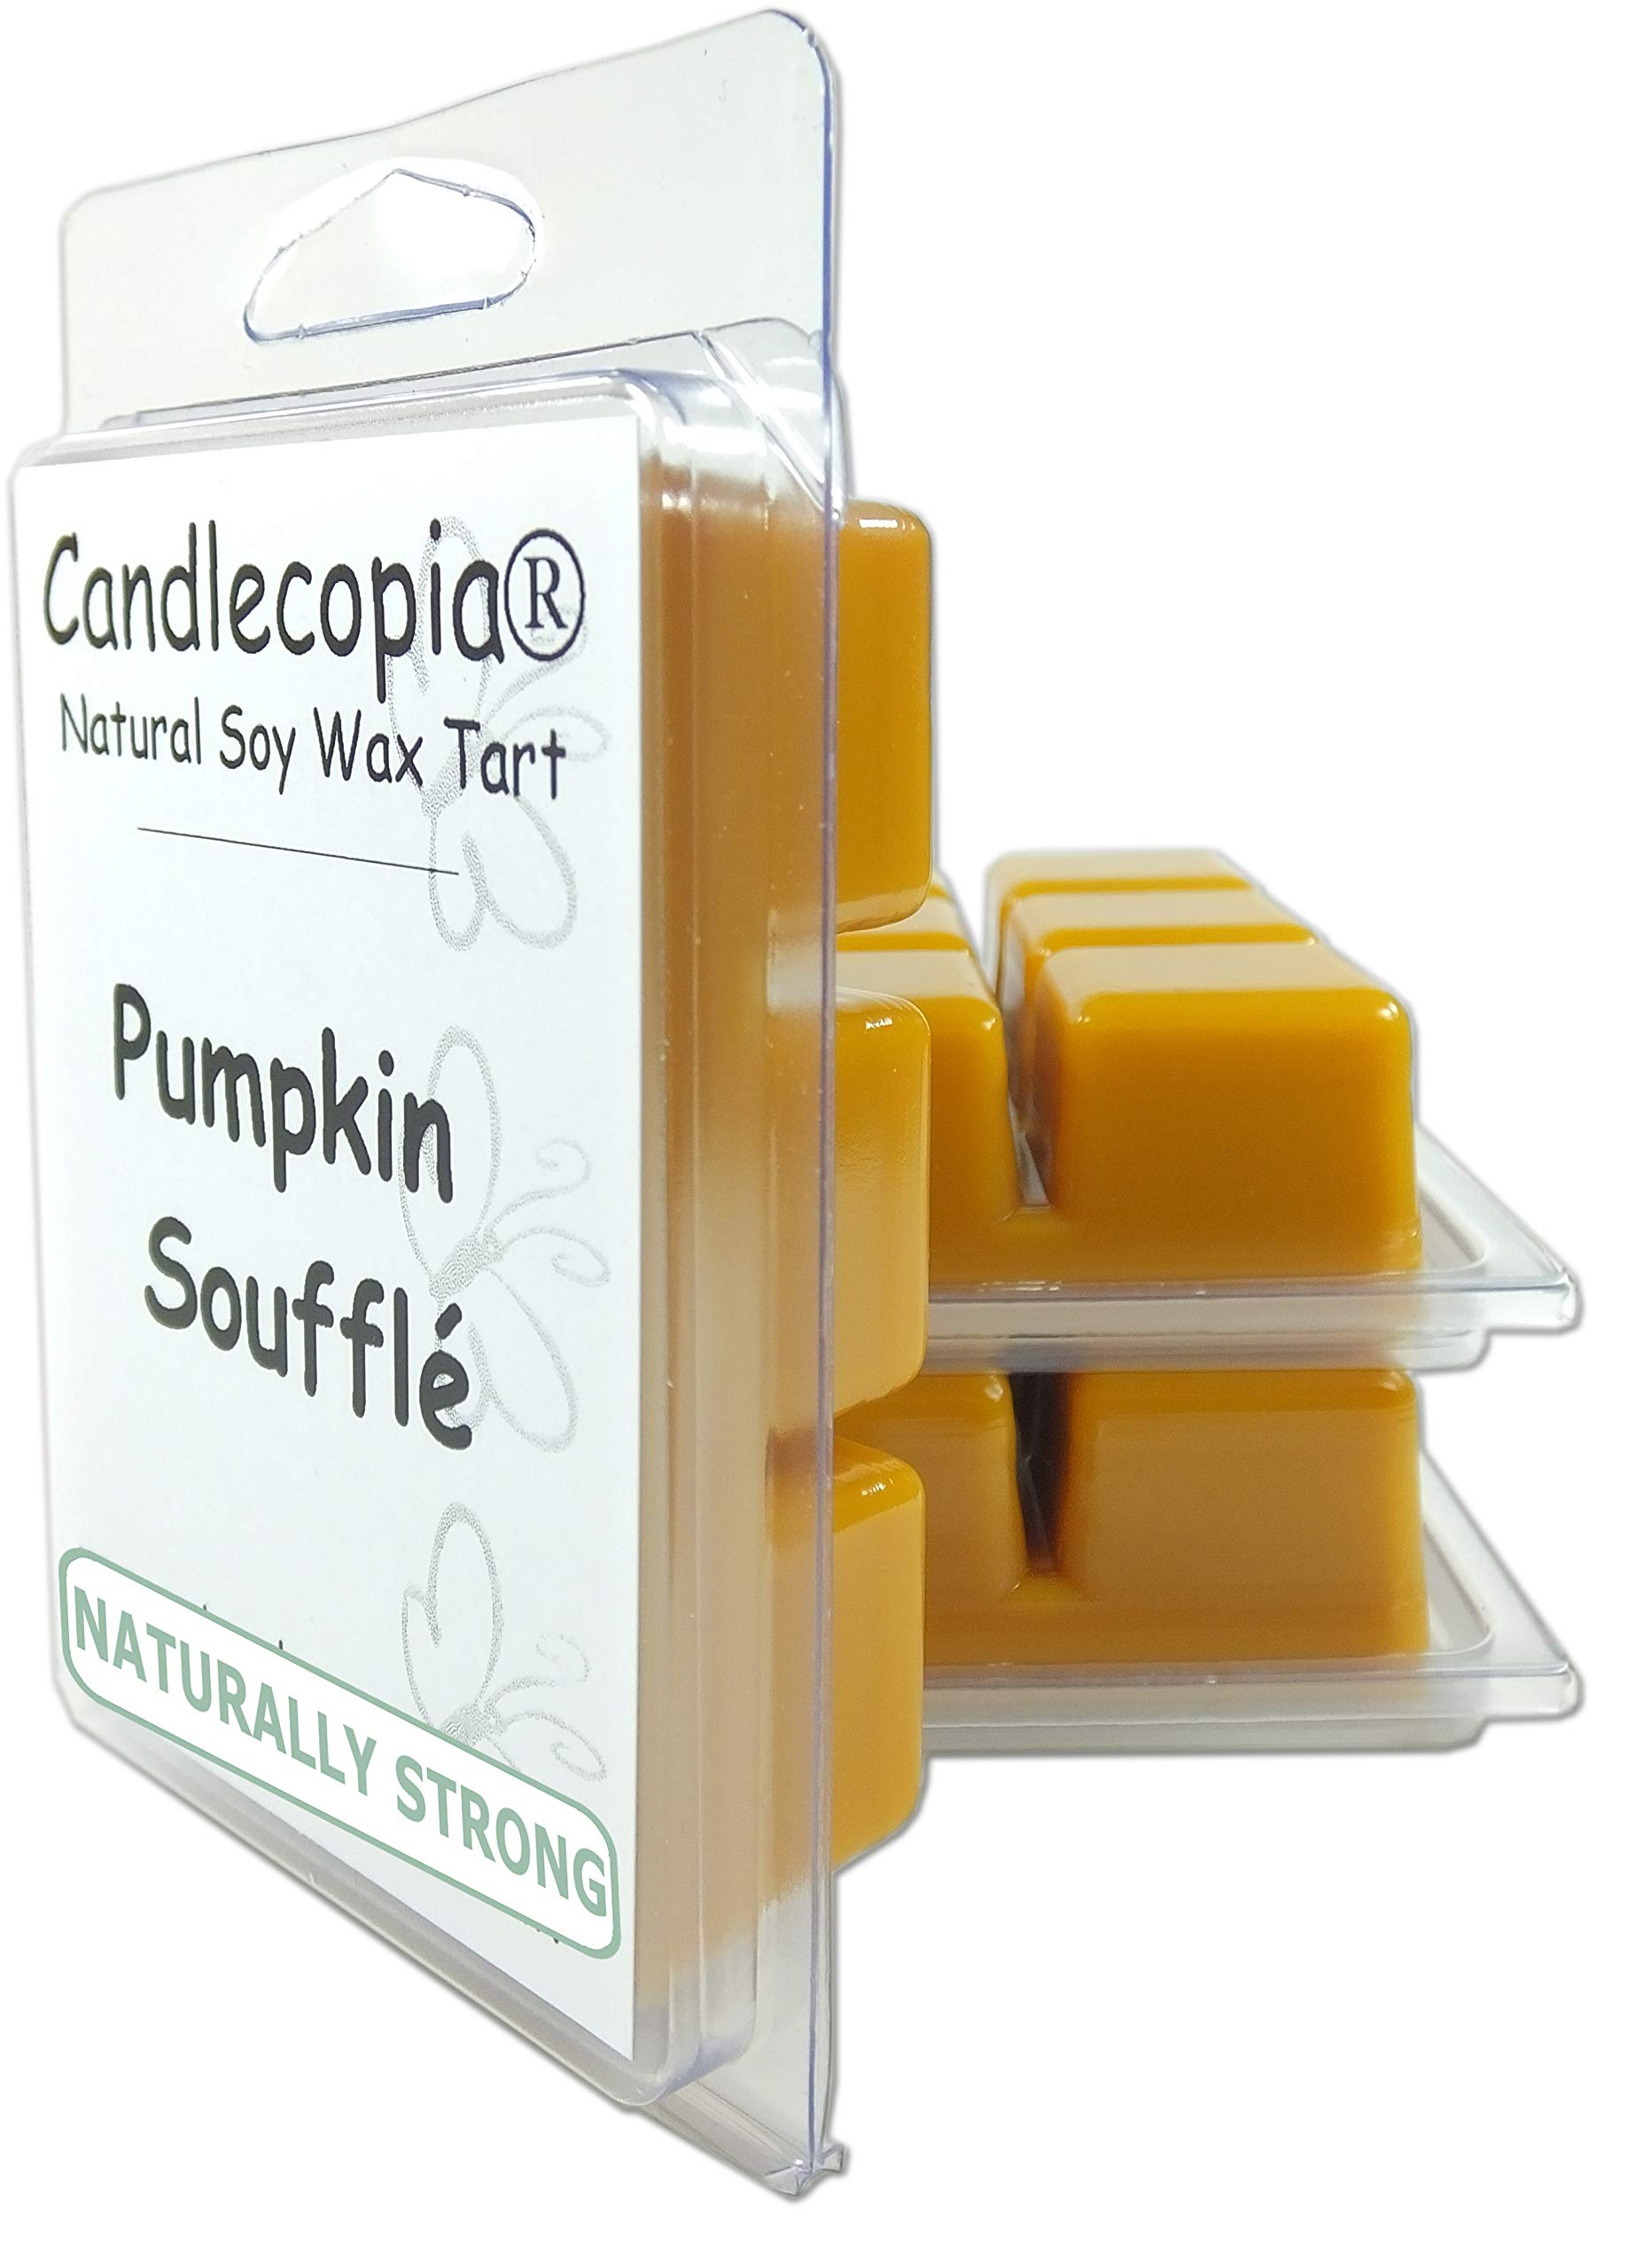 Candlecopia Pumpkin Soufflé Strongly Scented Hand Poured Vegan Wax Melts, 18 Scented Wax Cubes, 9.6 Ounces in 3 x 6-Packs